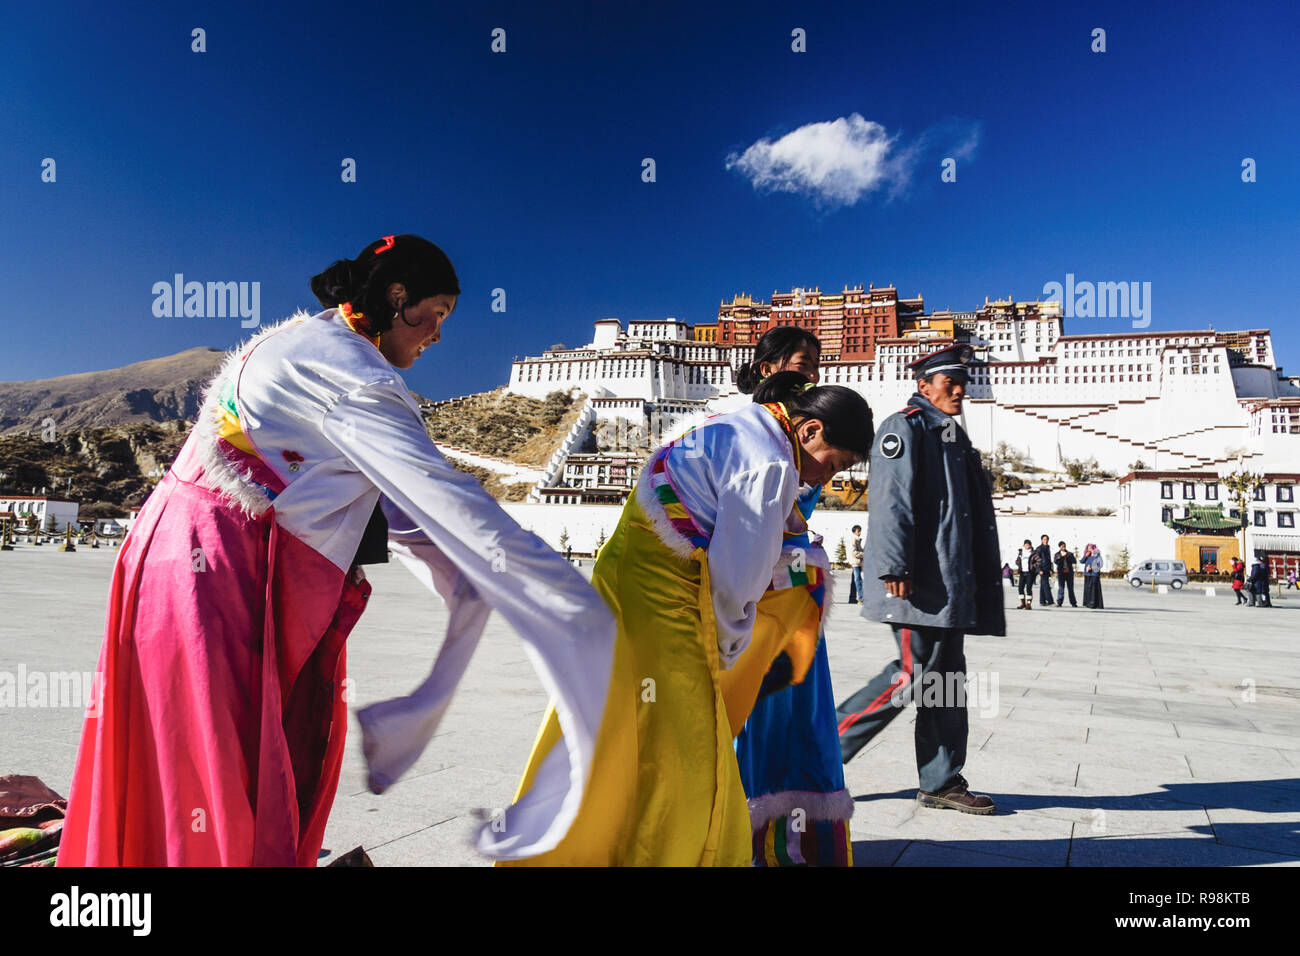 Lhasa, Tibet Autonomous Region, China : A Chinese policeman walks past three Tibetan women trying  out traditional costumes next to Potala palace. Fir - Stock Image